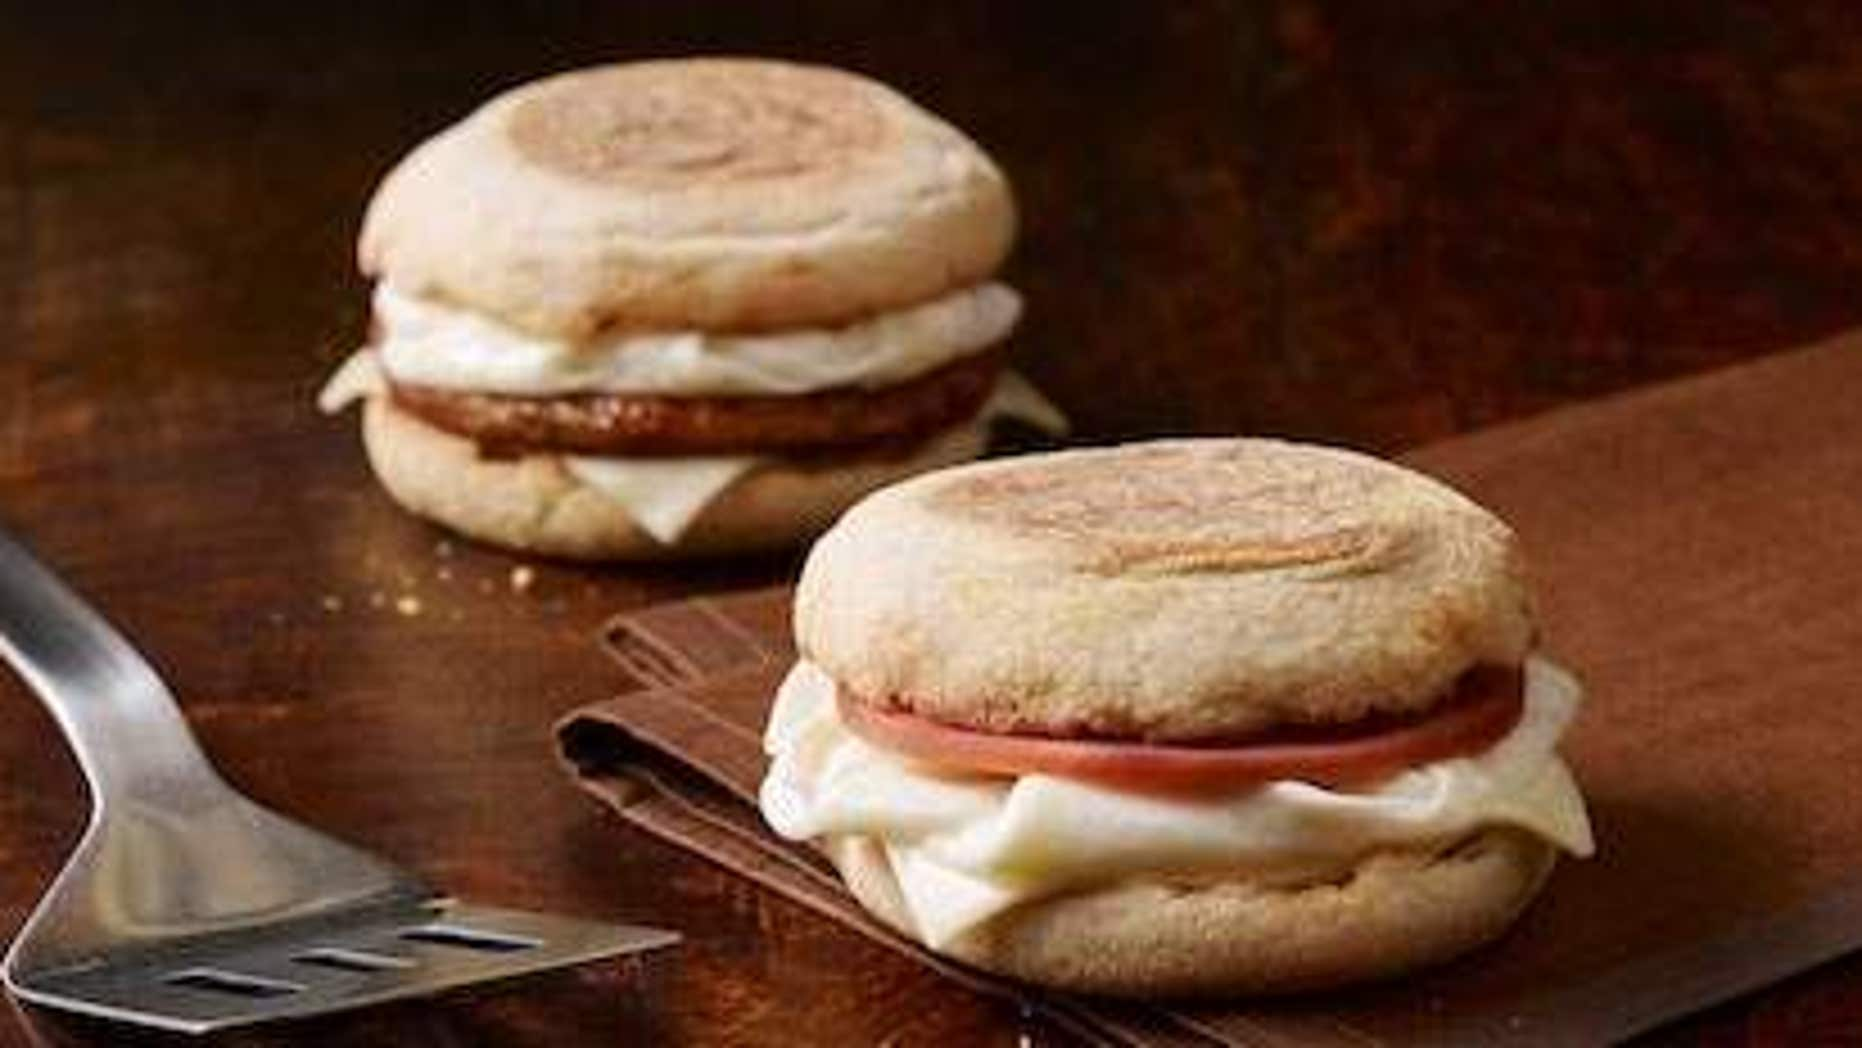 McDonald's needs more eggs as it rolls out its all-day breakfast across the country.